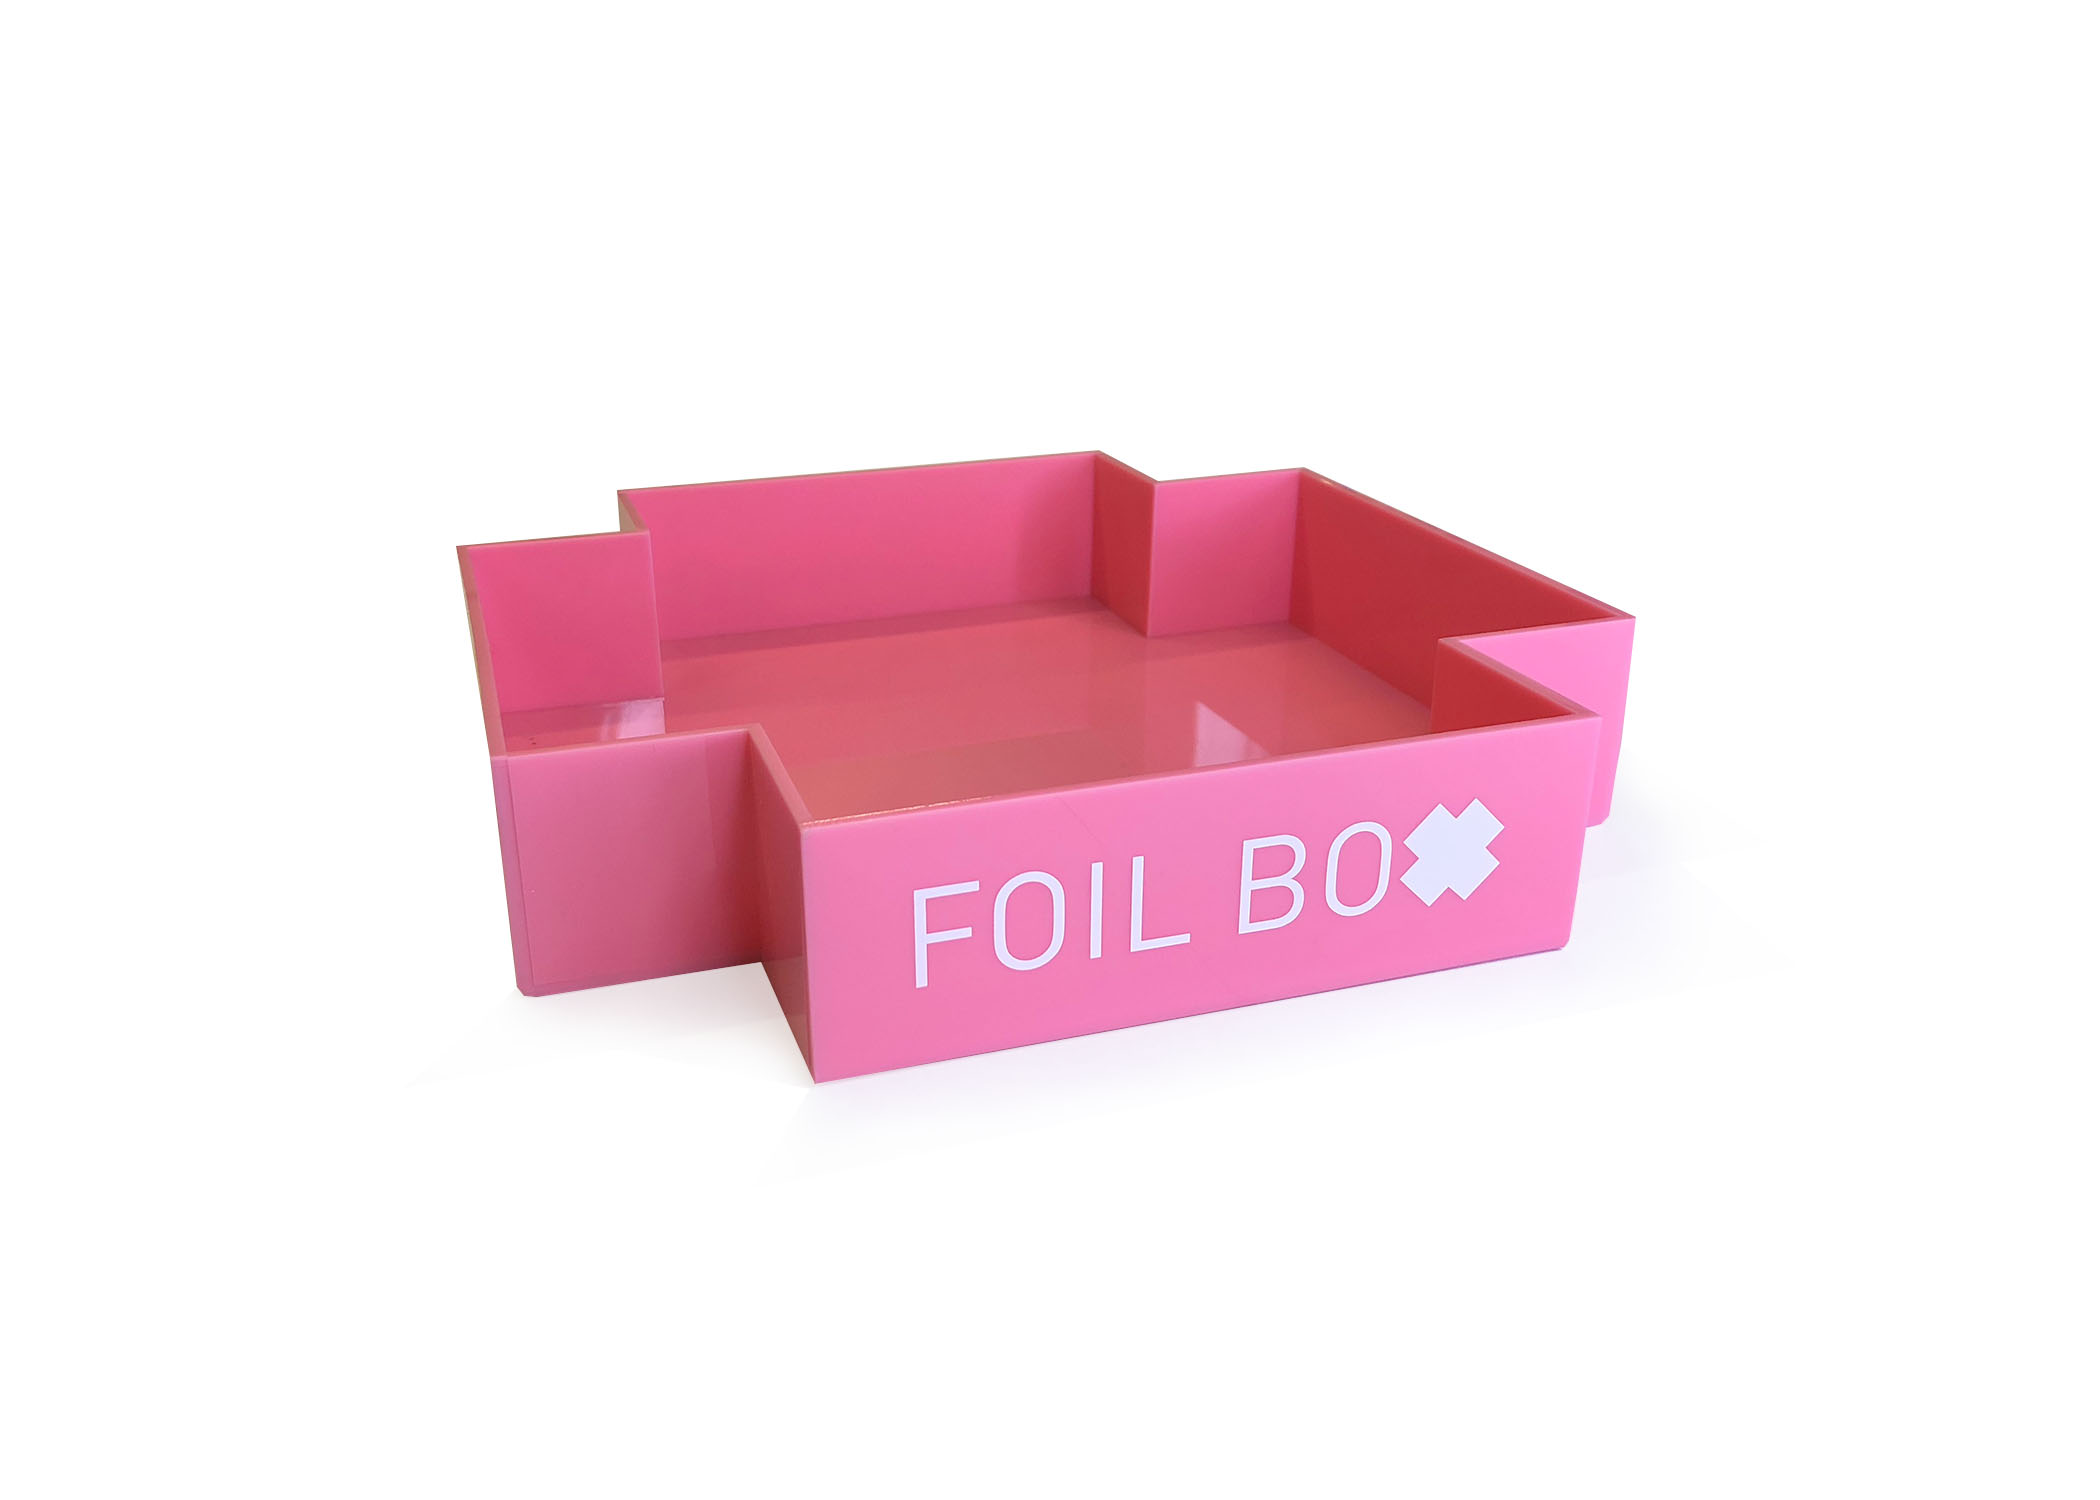 Photo of the pink foilbox by Sara Bryan